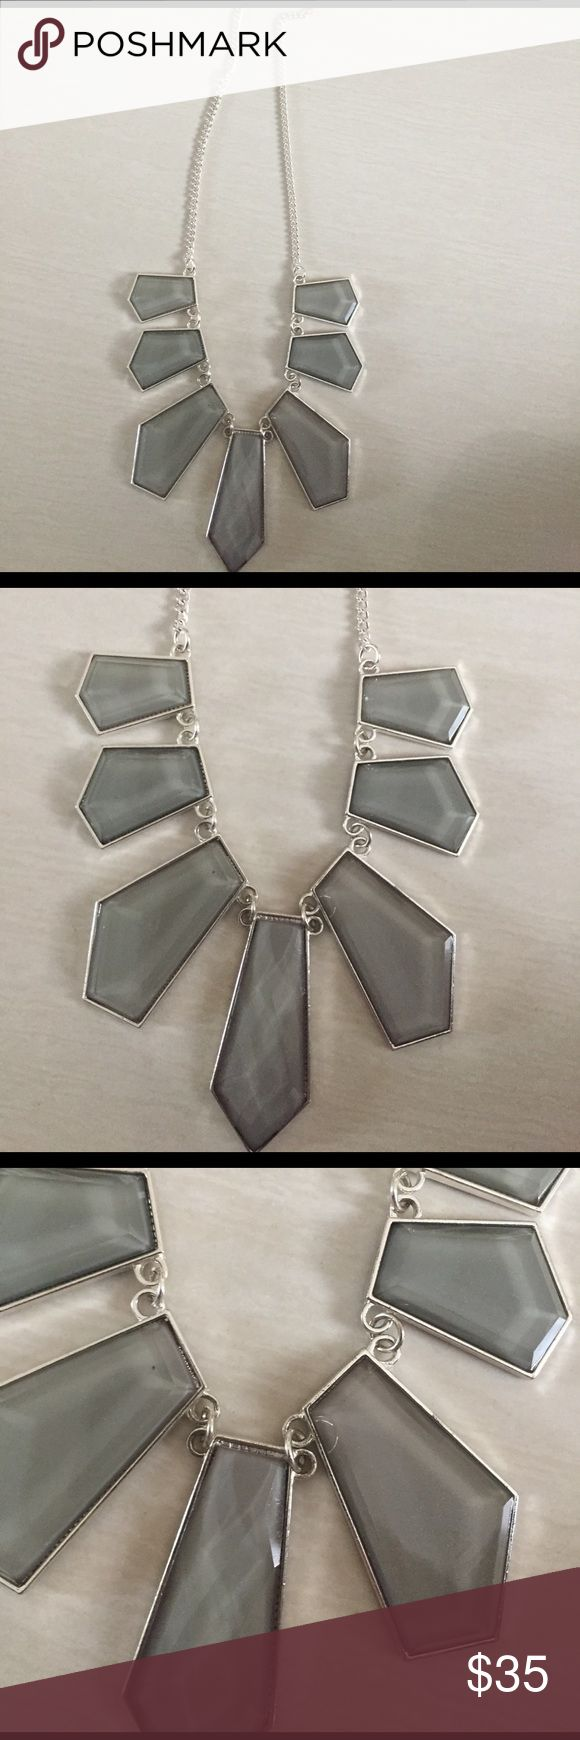 Gray Stone Bib Necklace Gray stone Bib Necklace. New without tags! Make an offer! Jewelry Necklaces